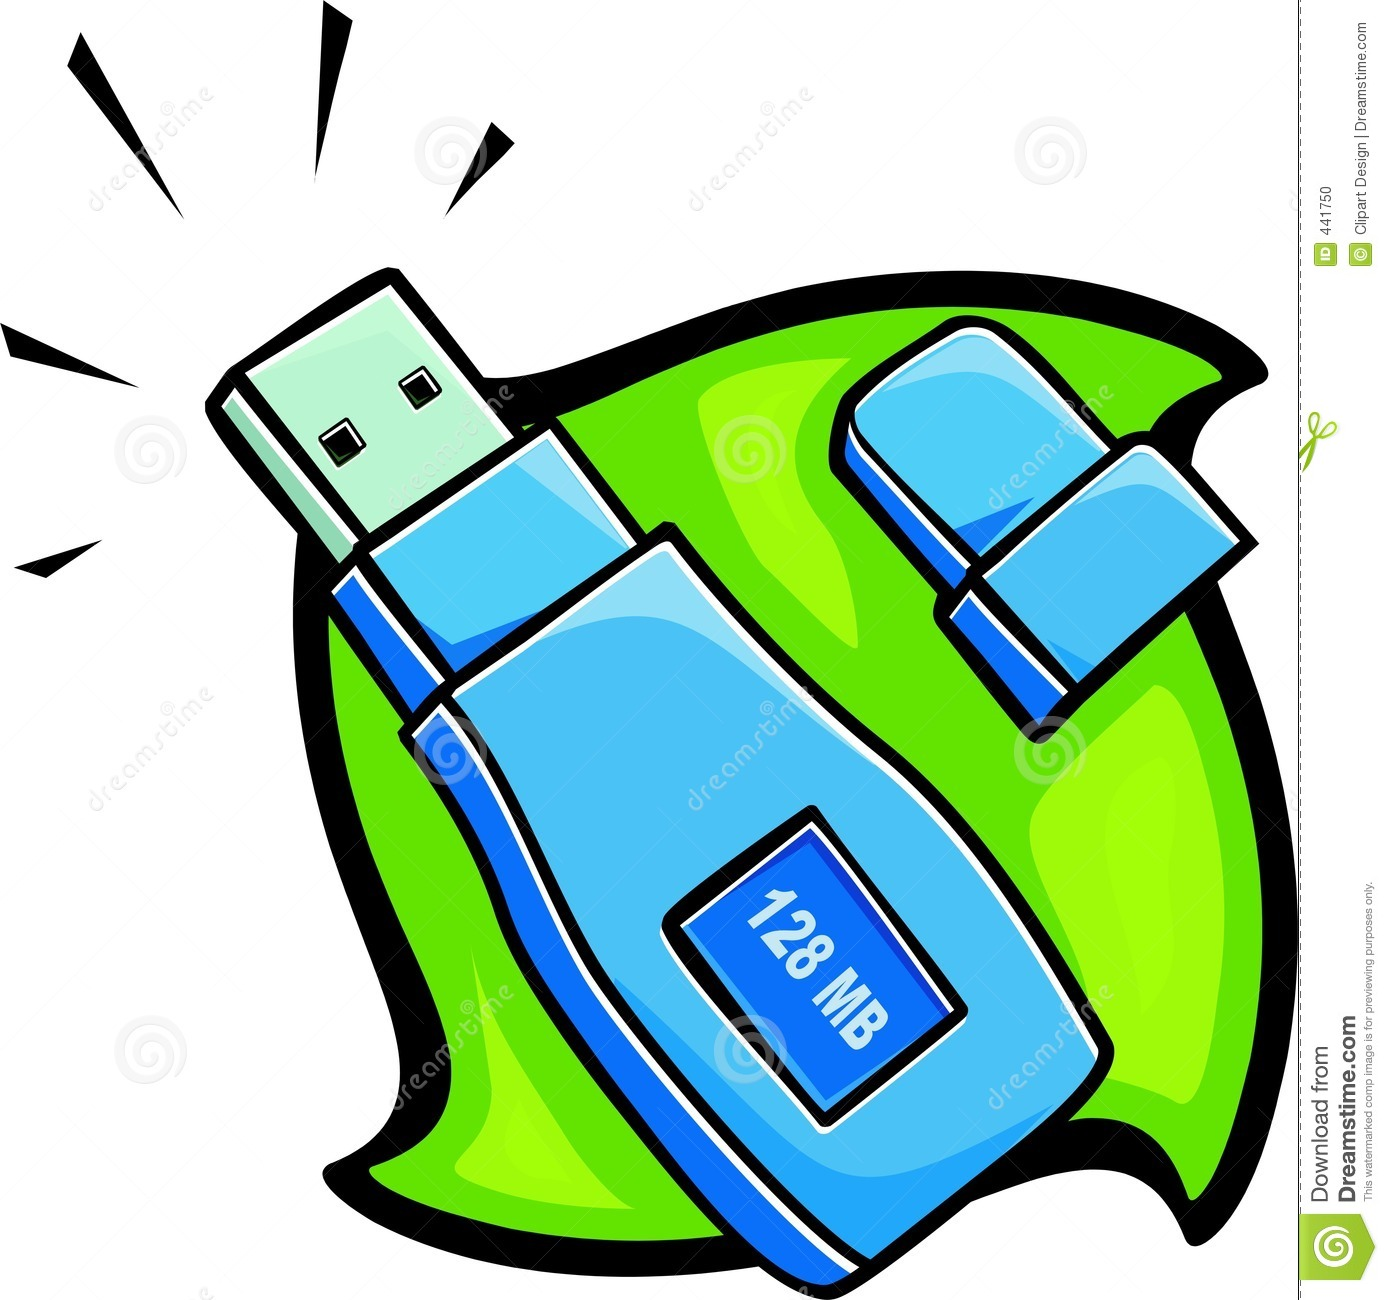 Removable USB Drive Stock Photo.